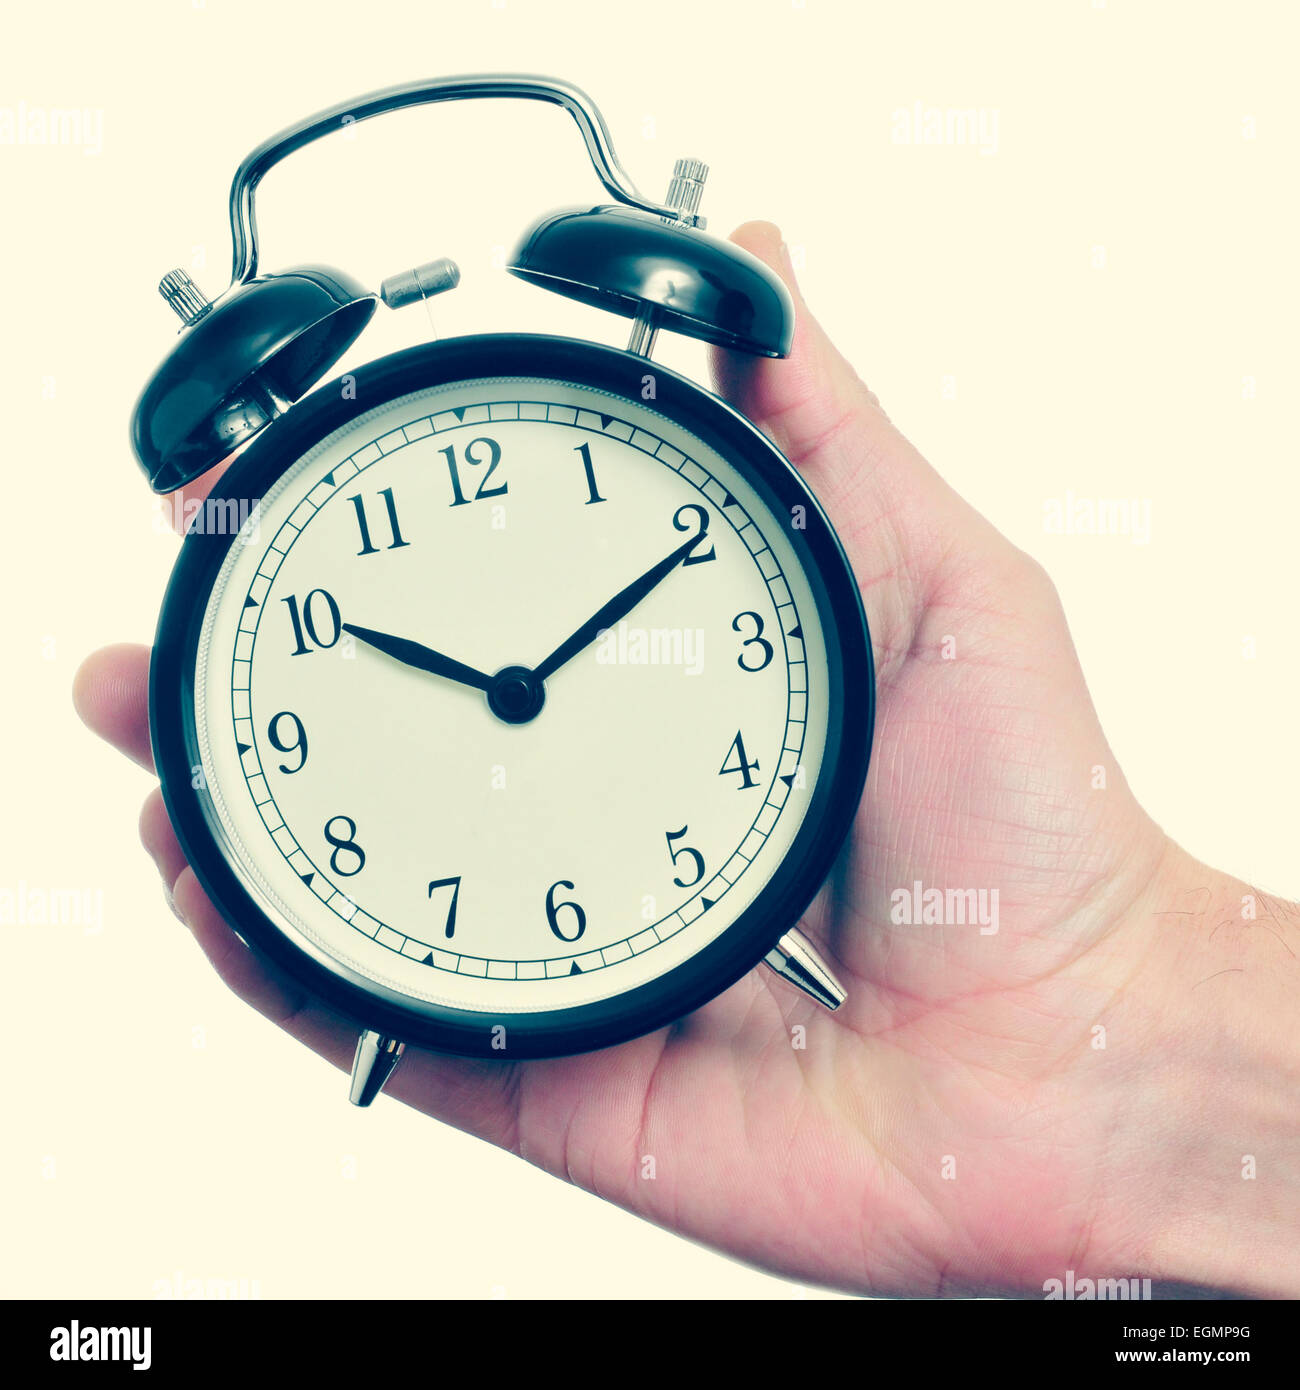 a man holding a mechanical alarm clock in his hand, with a retro effect - Stock Image